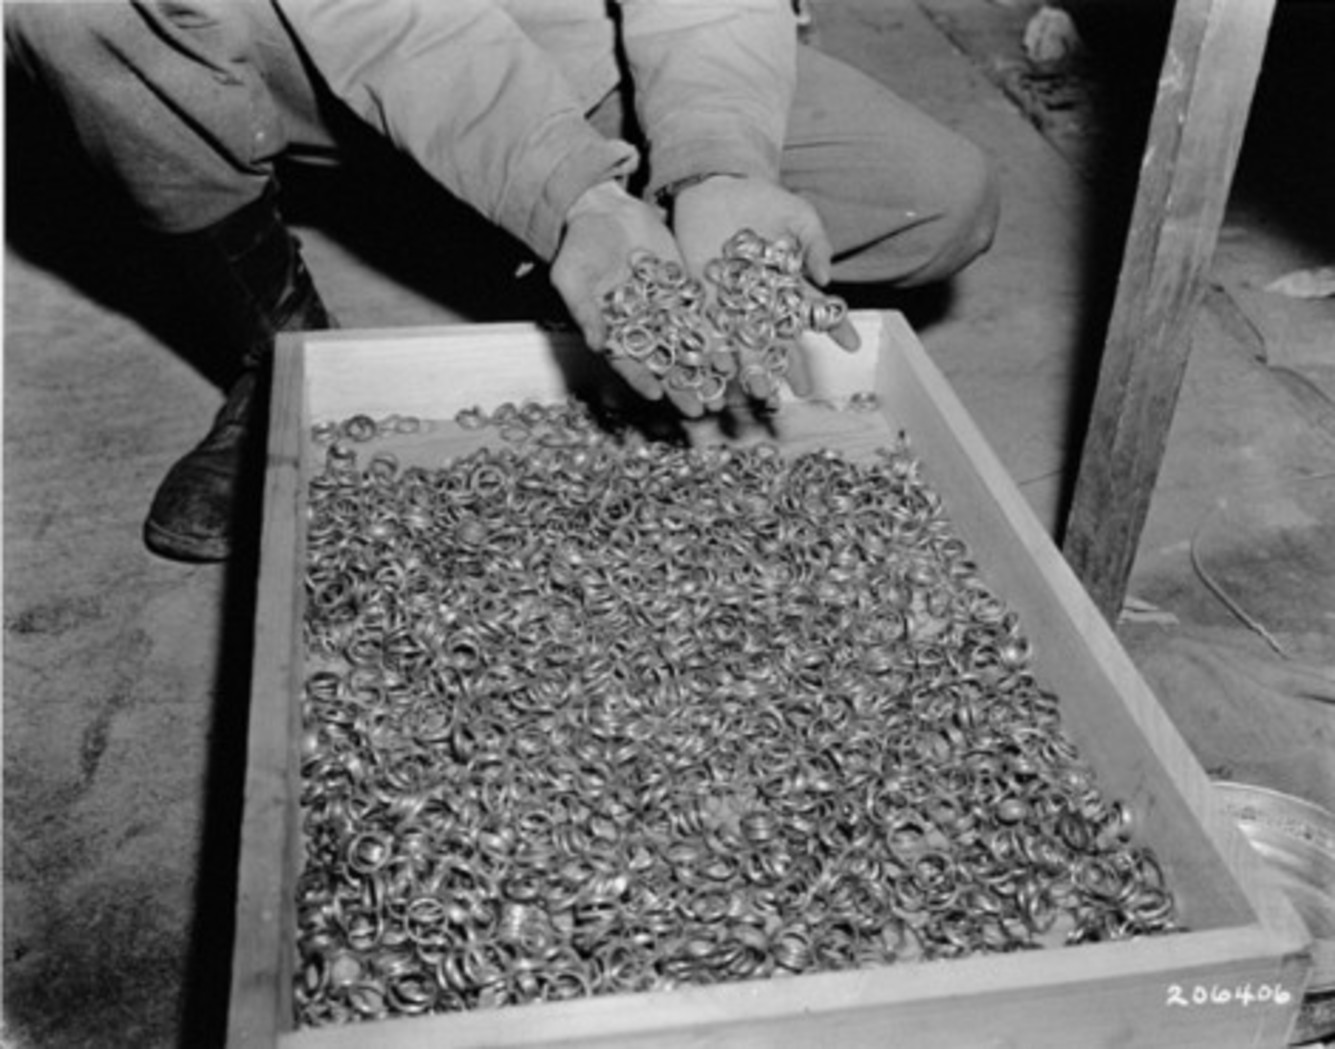 In this May 1945 image, a U.S. soldier dips his hands into a crate full of rings confiscated from prisoners in Buchenwald.  National Archives and Records Administration